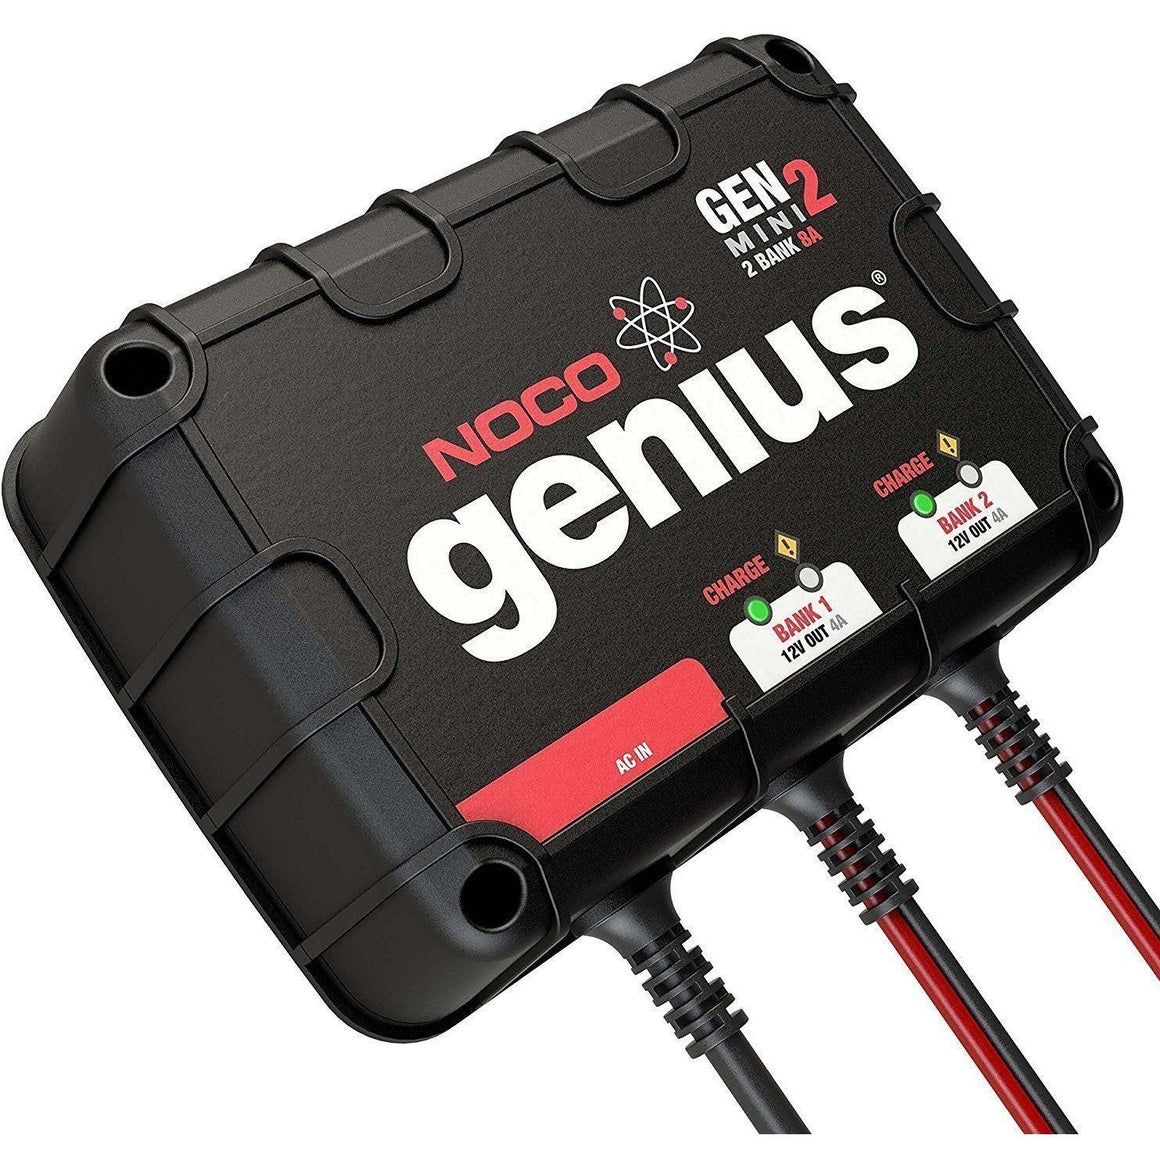 NOCO Genius GENM2 8 Amp 2-Bank Waterproof Smart On-Board Battery Charger